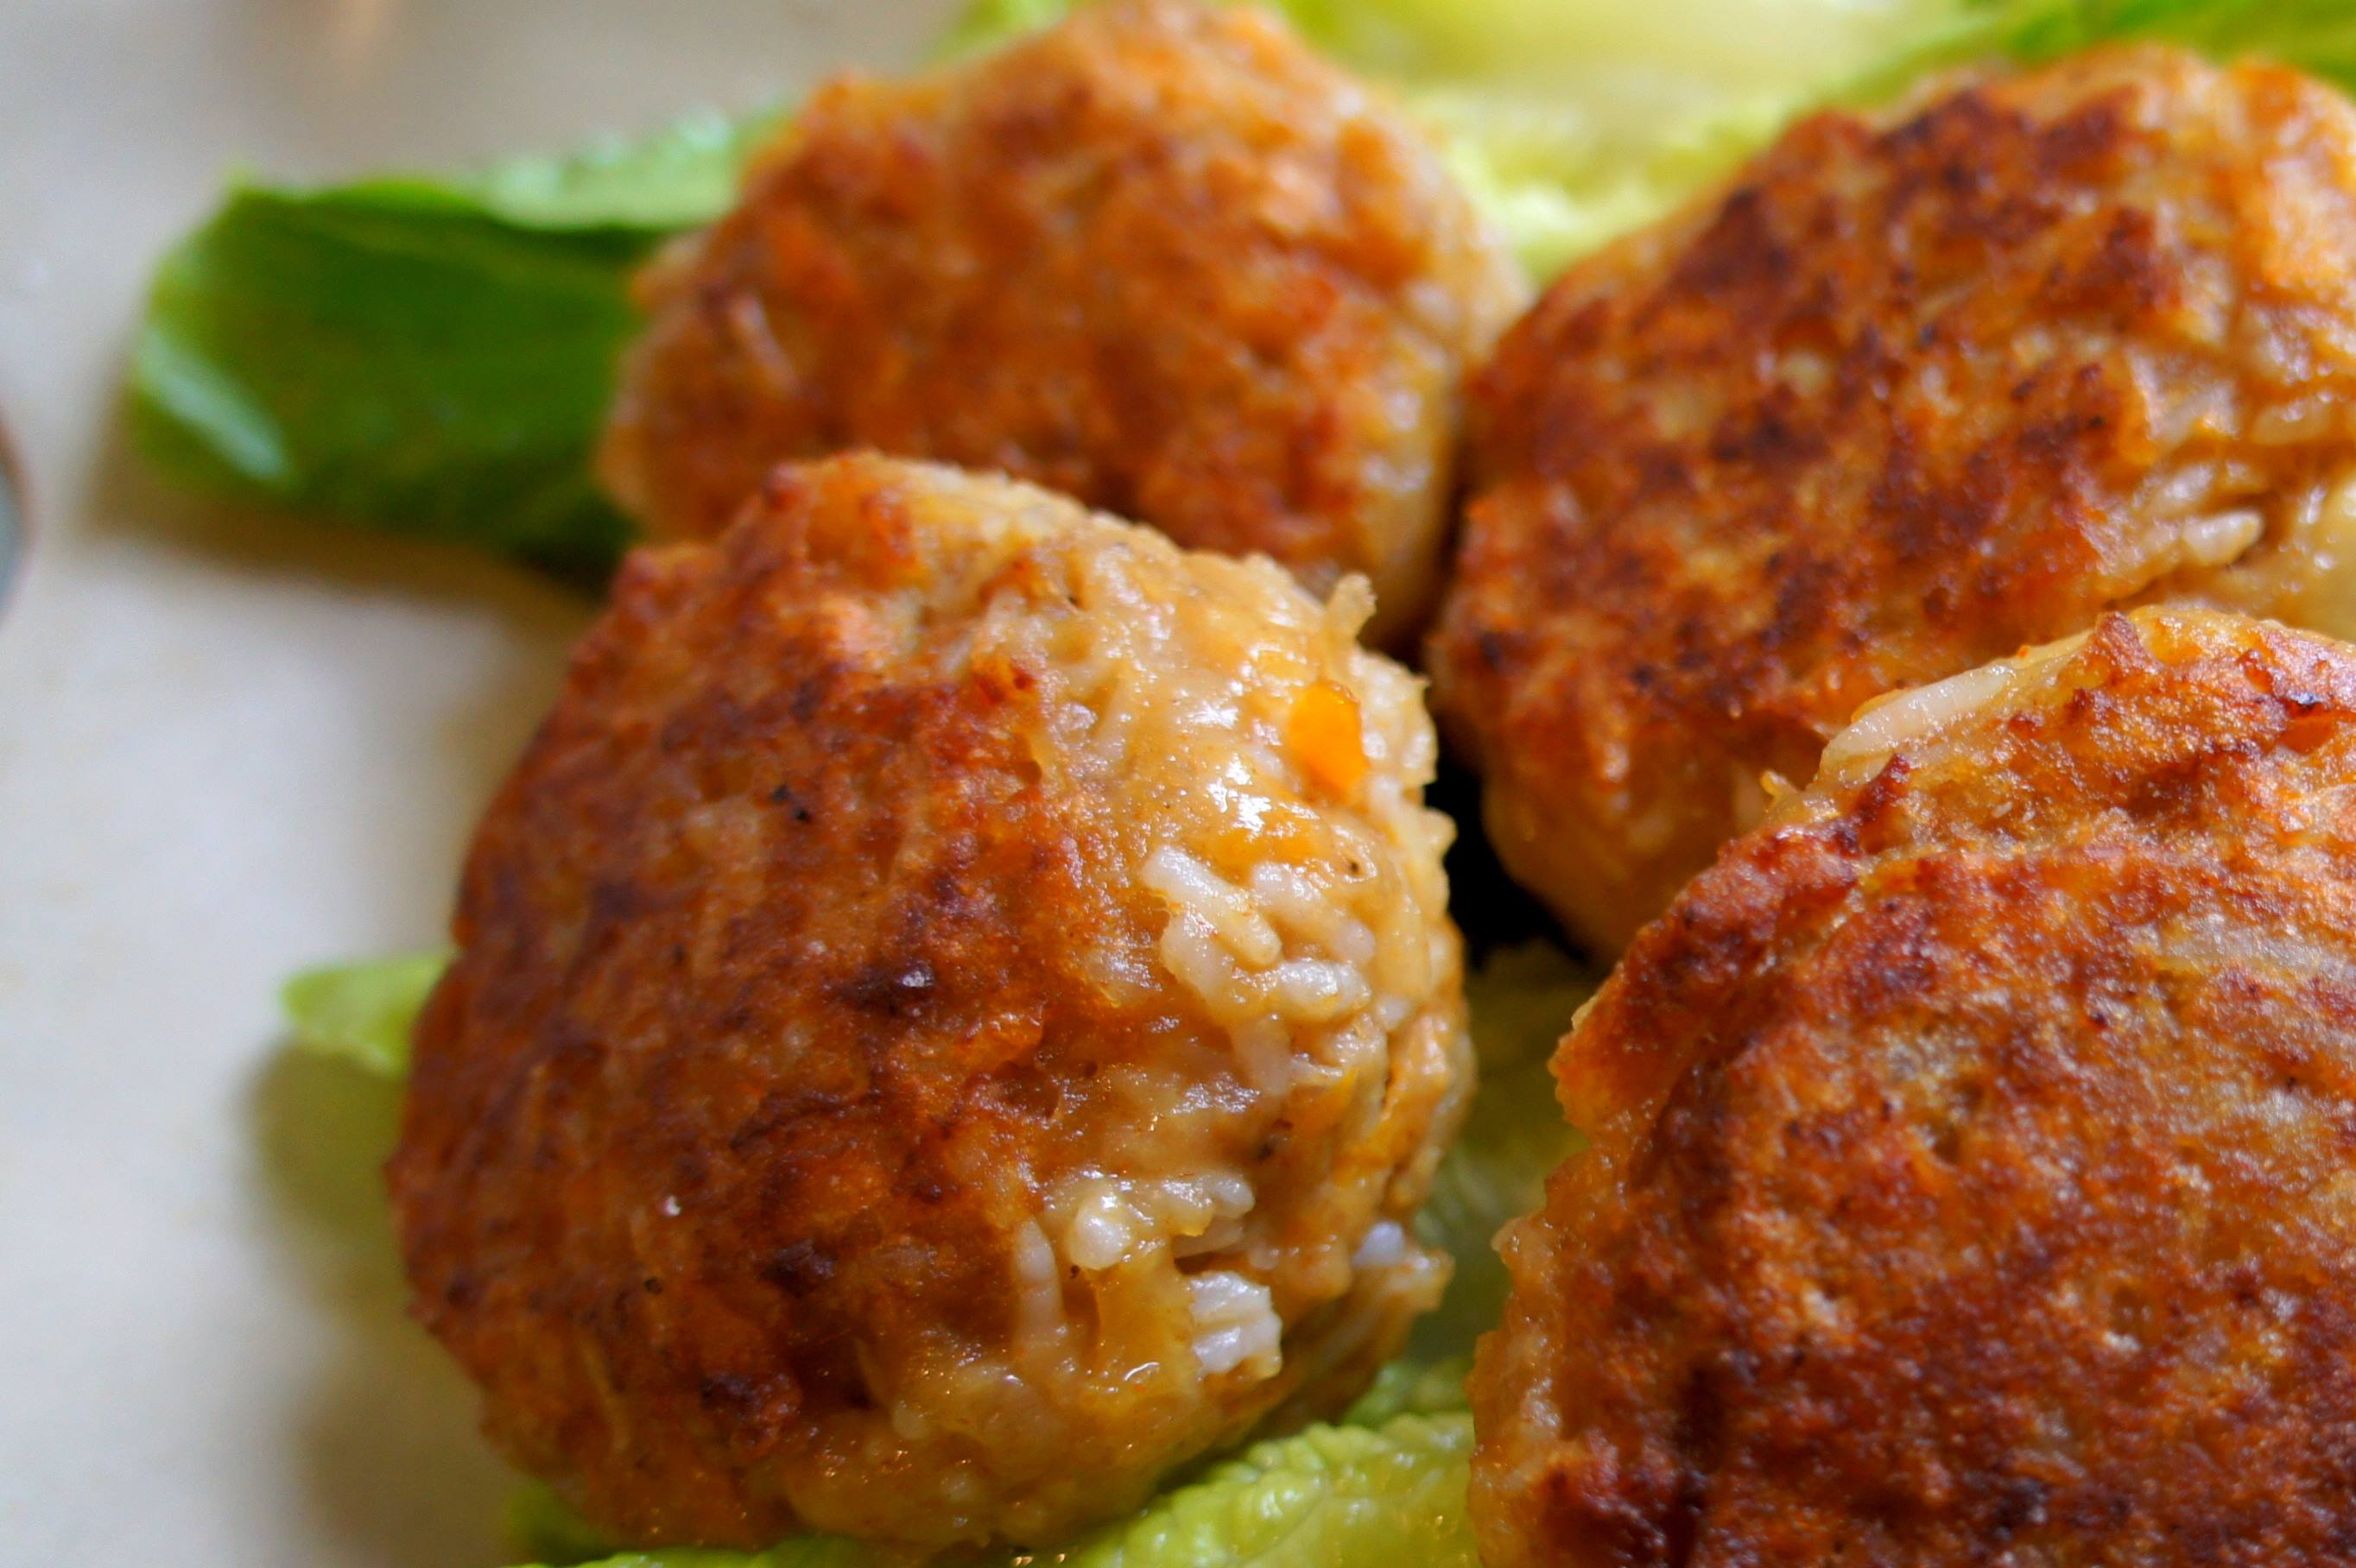 Beef rissoles with potato, rice and cheese, fodmap friendly, gluten free, IBS